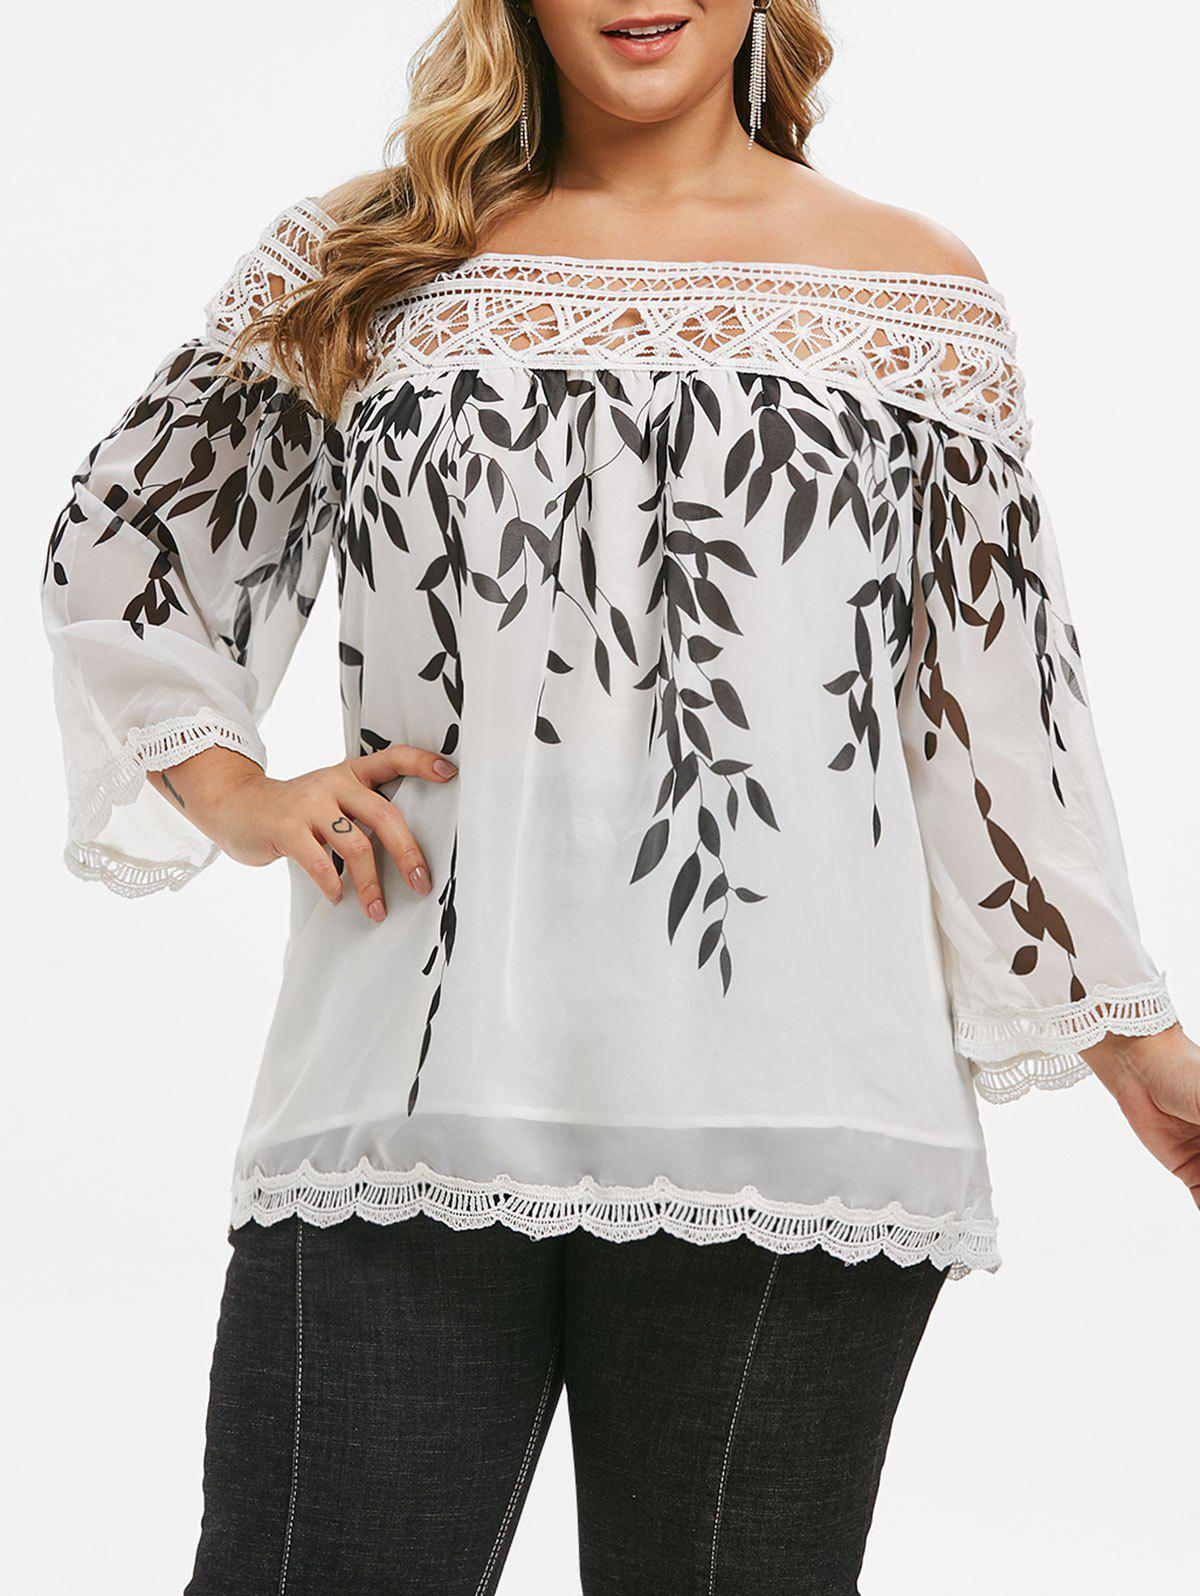 Hot Crochet Lace Panel Scalloped Leaves Print Plus Size Blouse